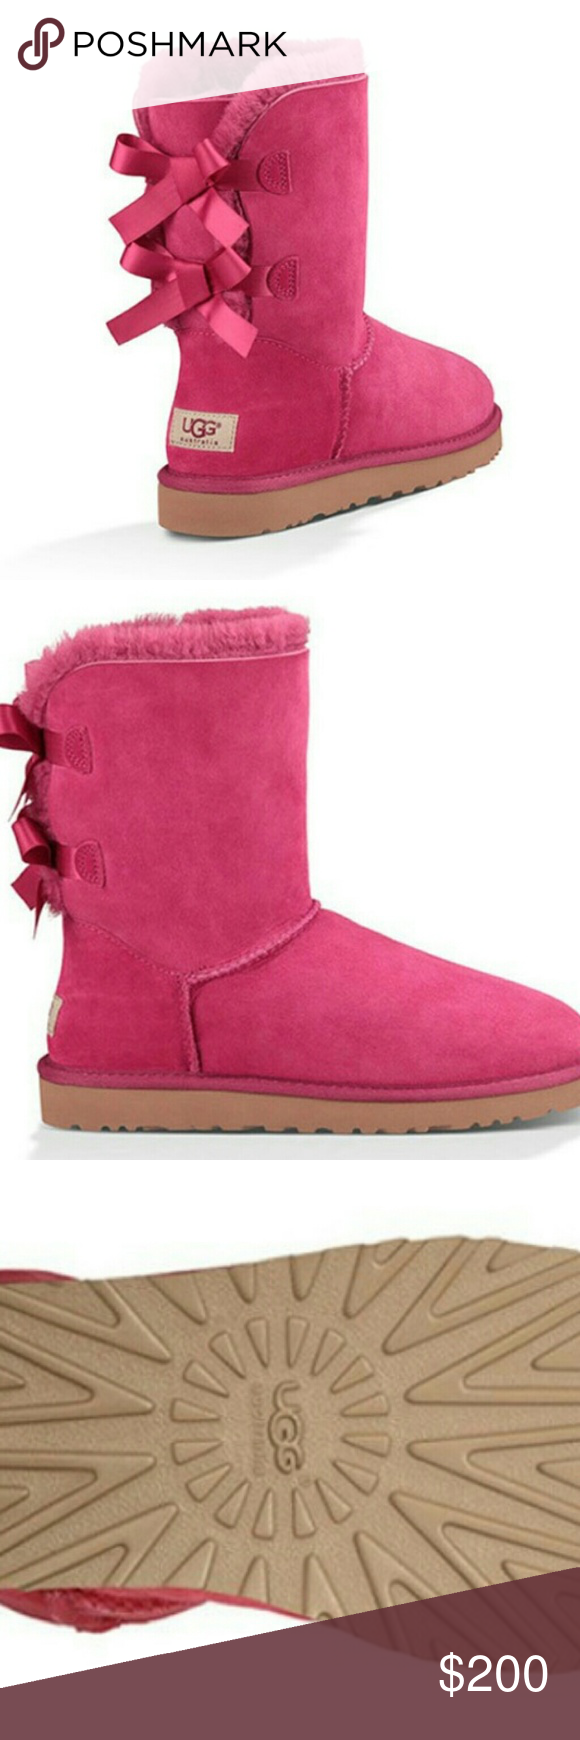 Ugg boots short or tall all colors and sizes Ugg boots short or tall all colors